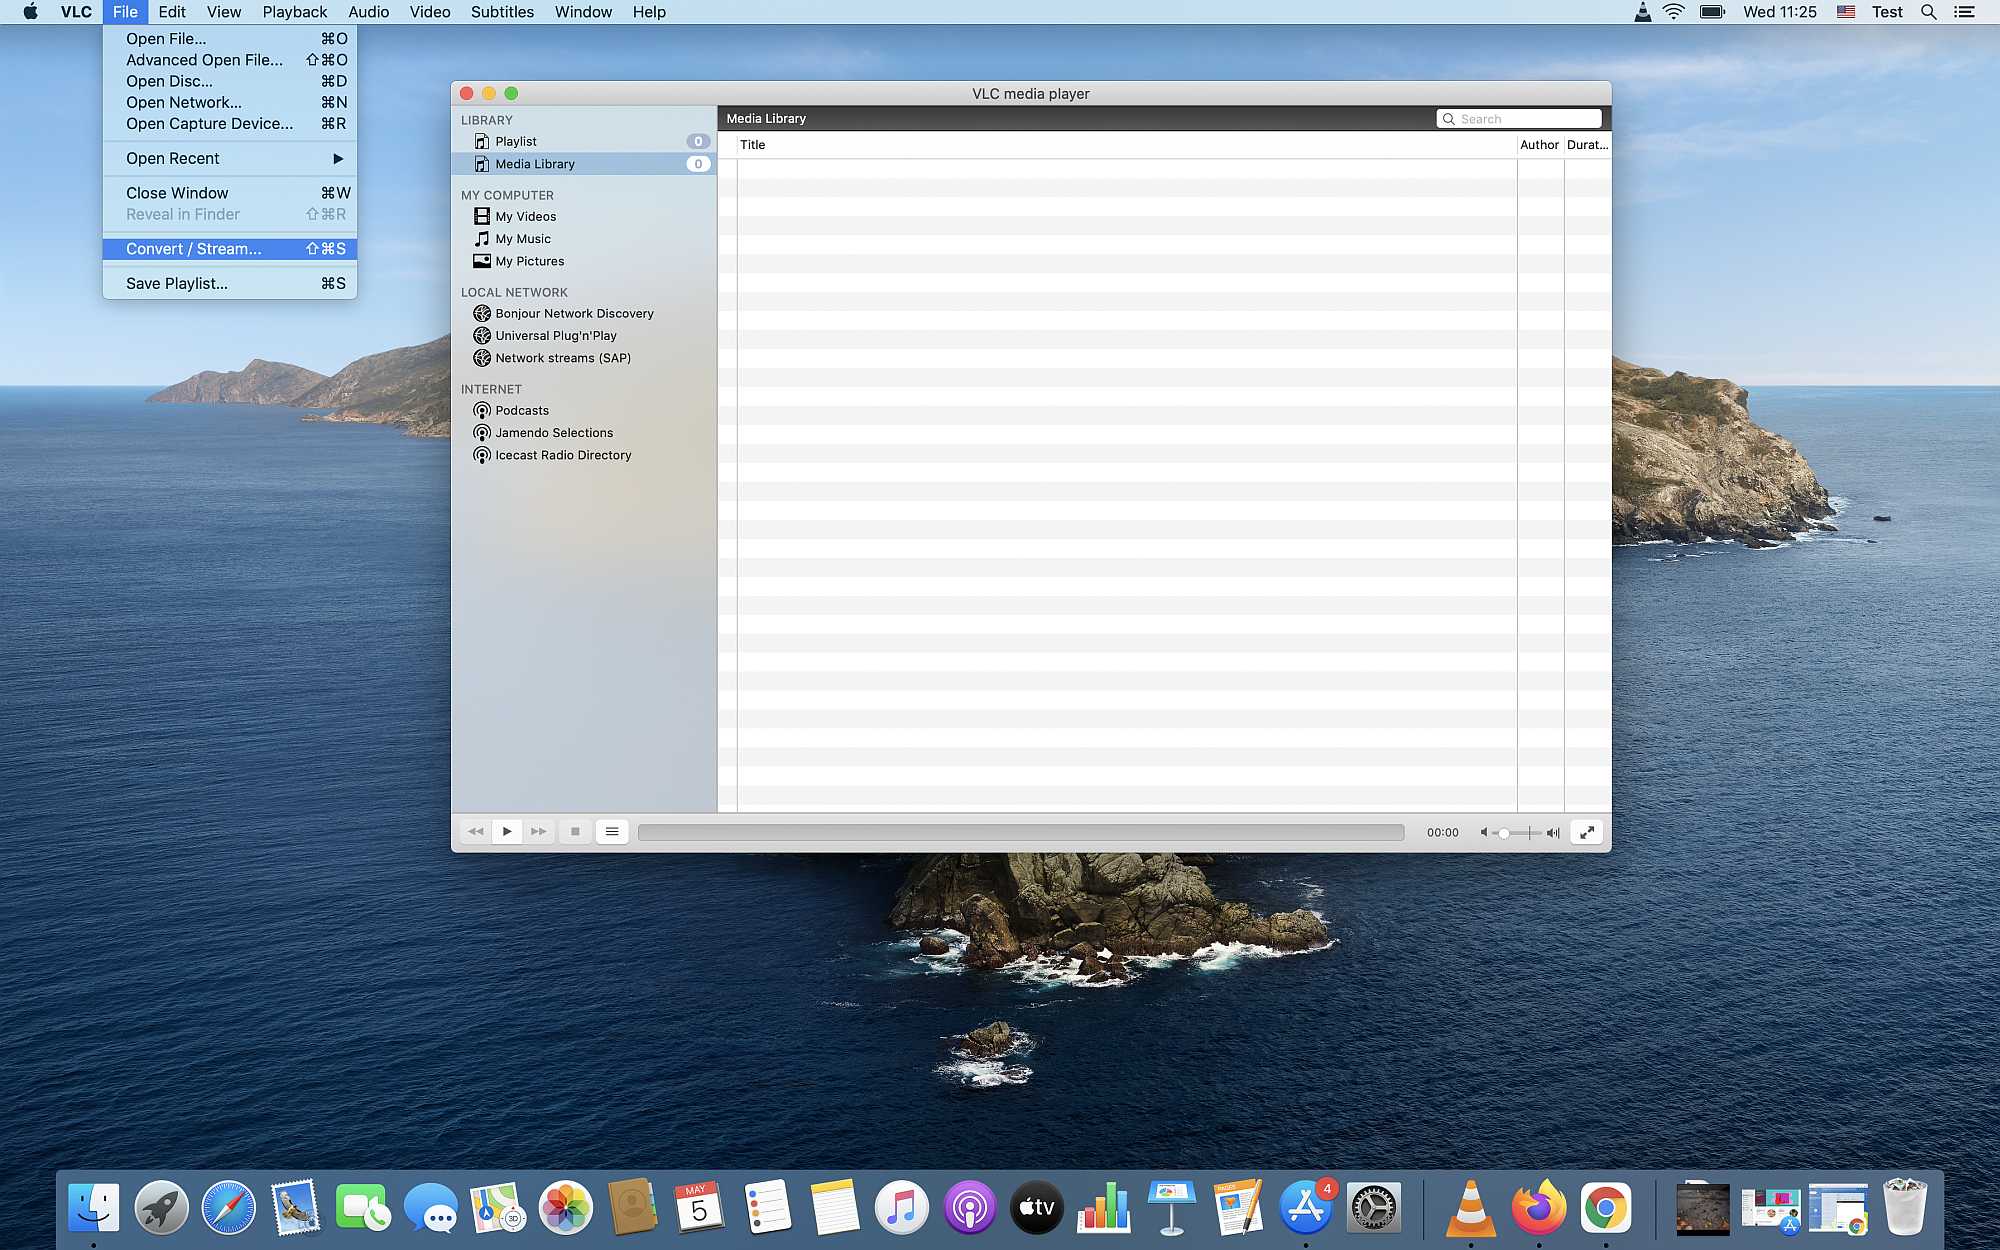 How to convert MP4 to MPG on Mac OS Catalina using VLC?